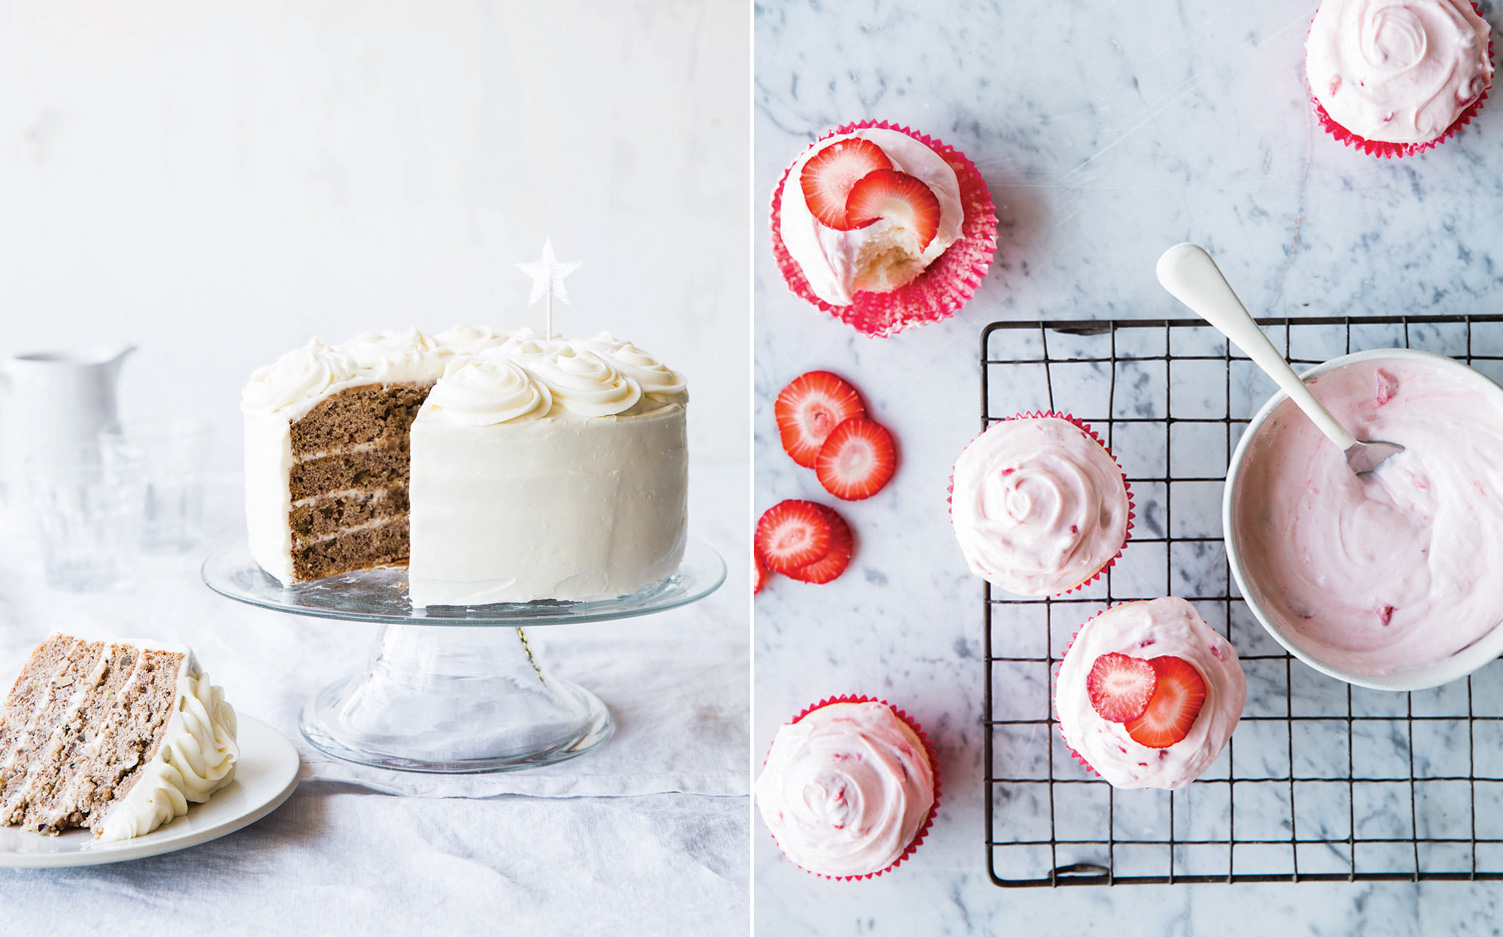 Pictures of cake and cupcakes from Catherine Ruehle's cookbook Let Us All Eat Cake